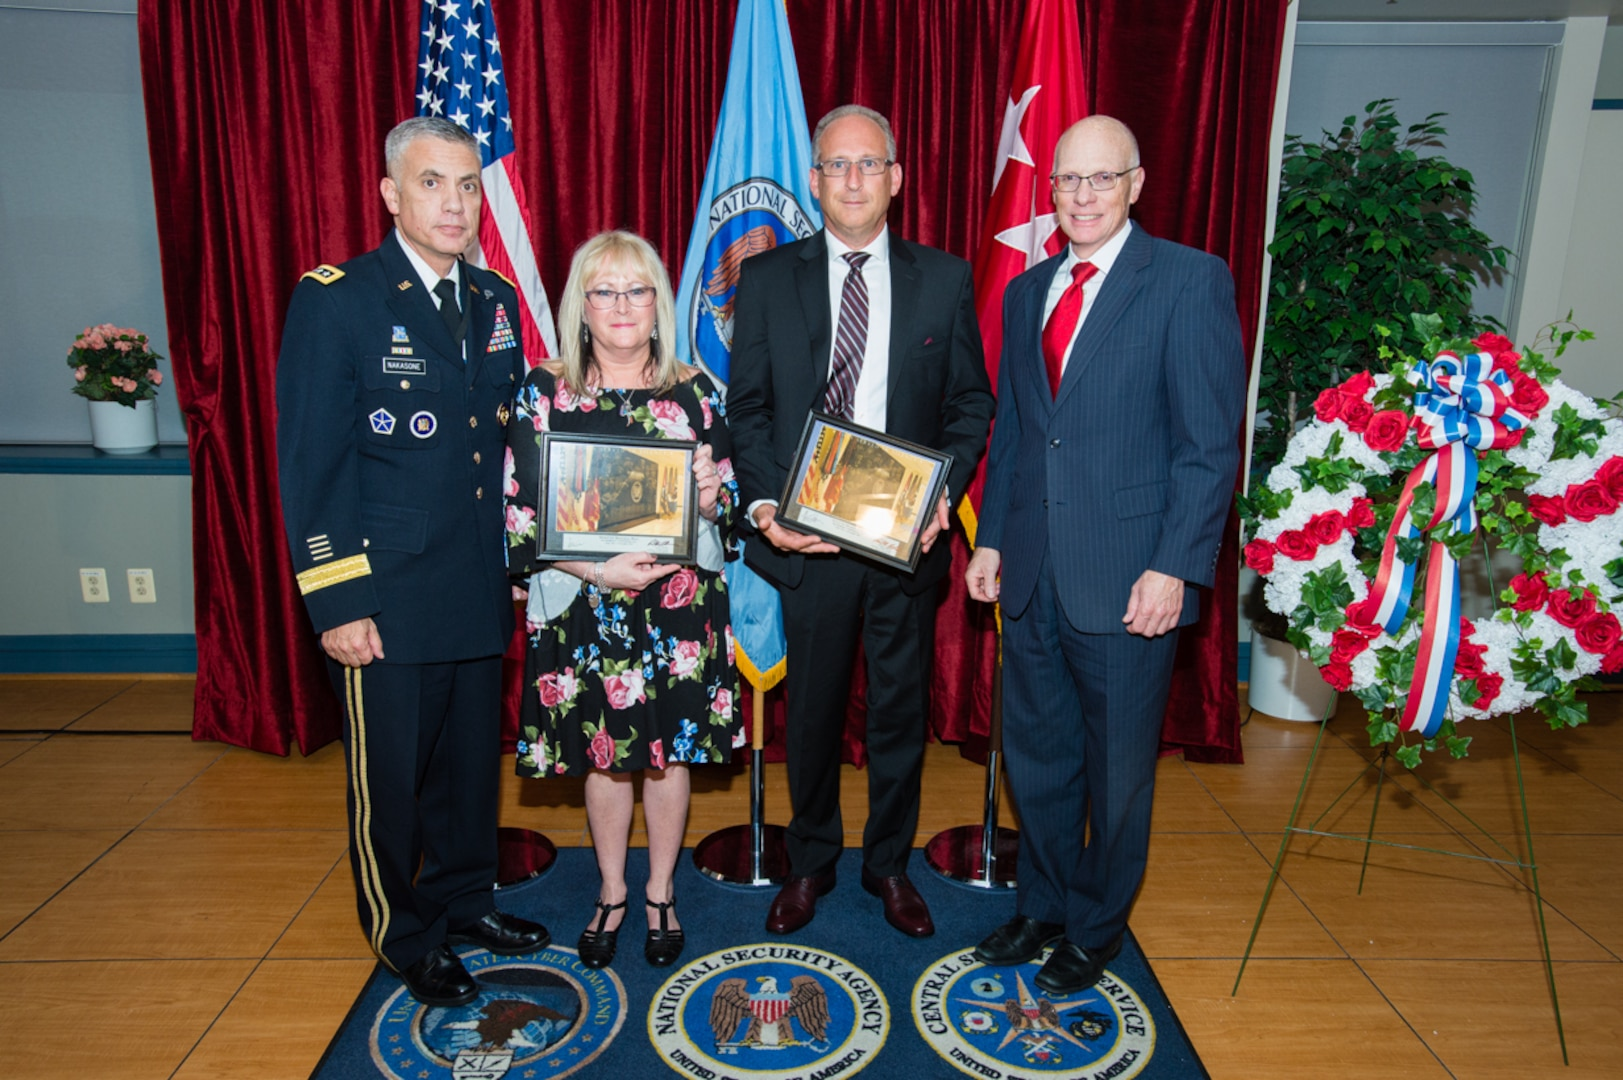 The Cavanaugh and Mitchell families receive a memento honoring Sgt. Townsend from General Paul M. Nakasone, Director  National Security Agency, and George C. Barnes, Deputy Director  National Security Agency.